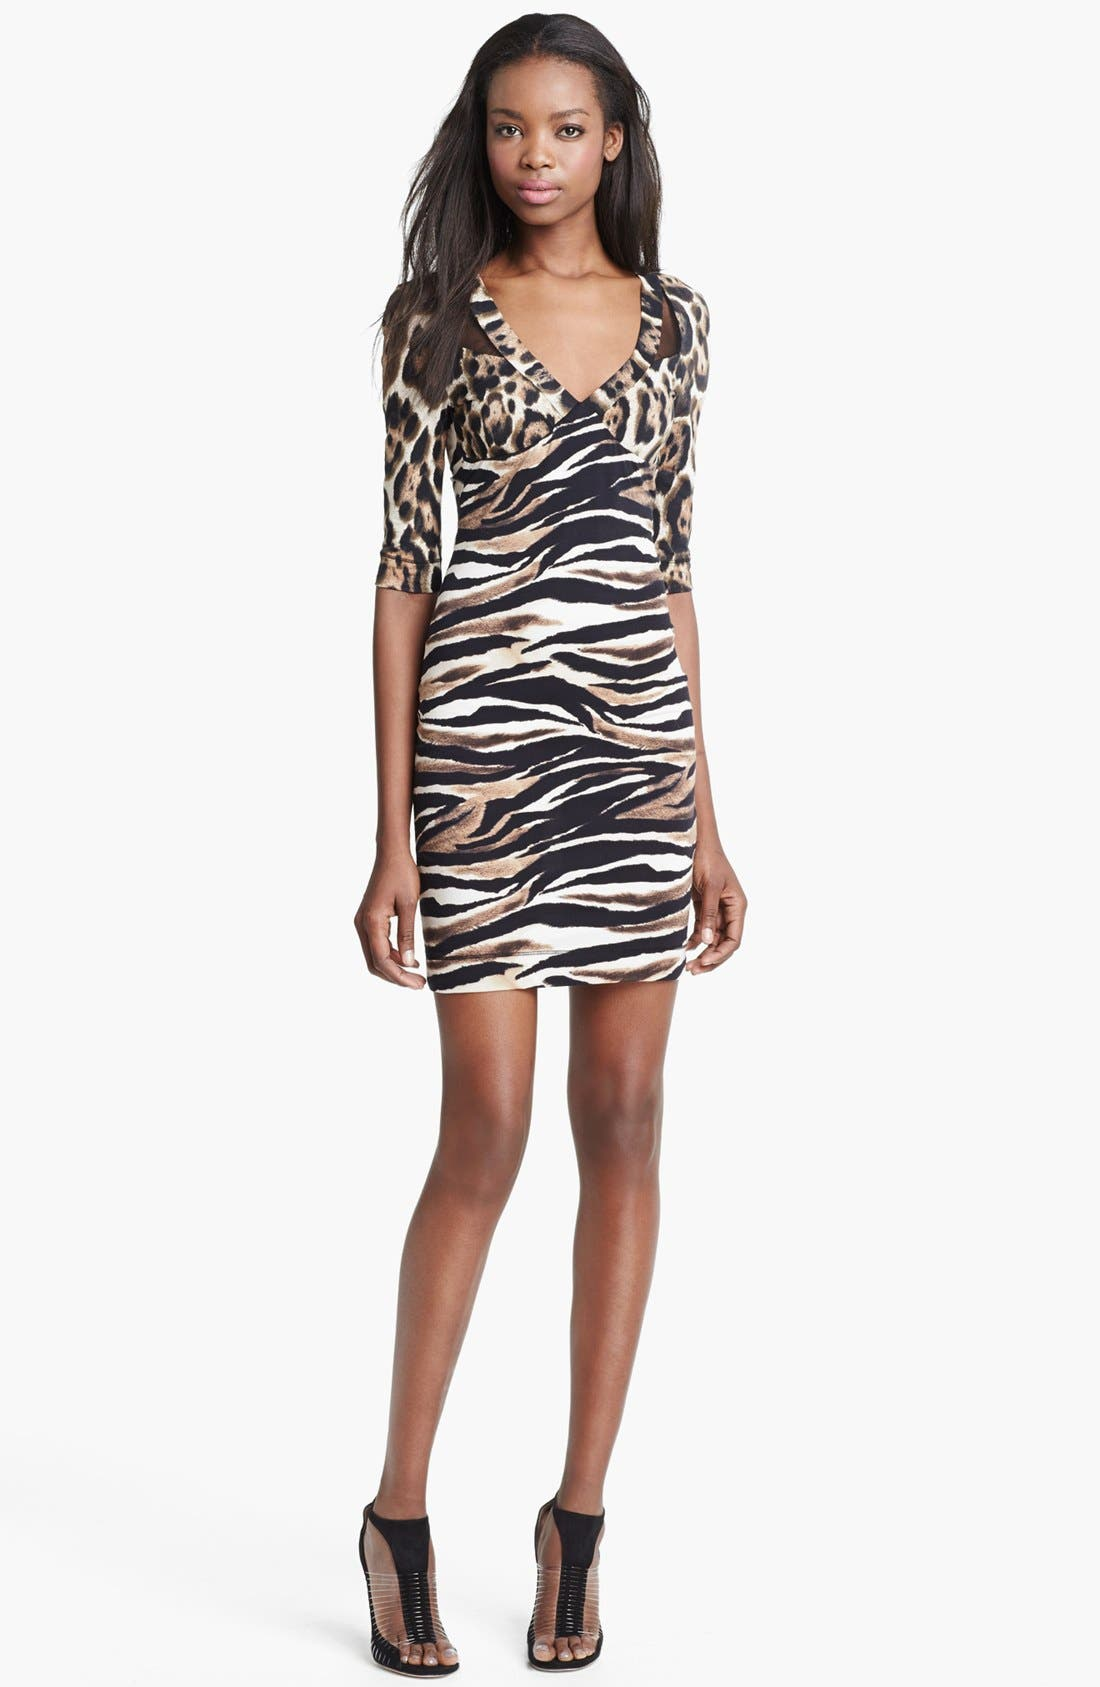 Alternate Image 1 Selected - Just Cavalli Leopard & Zebra Print Jersey Dress